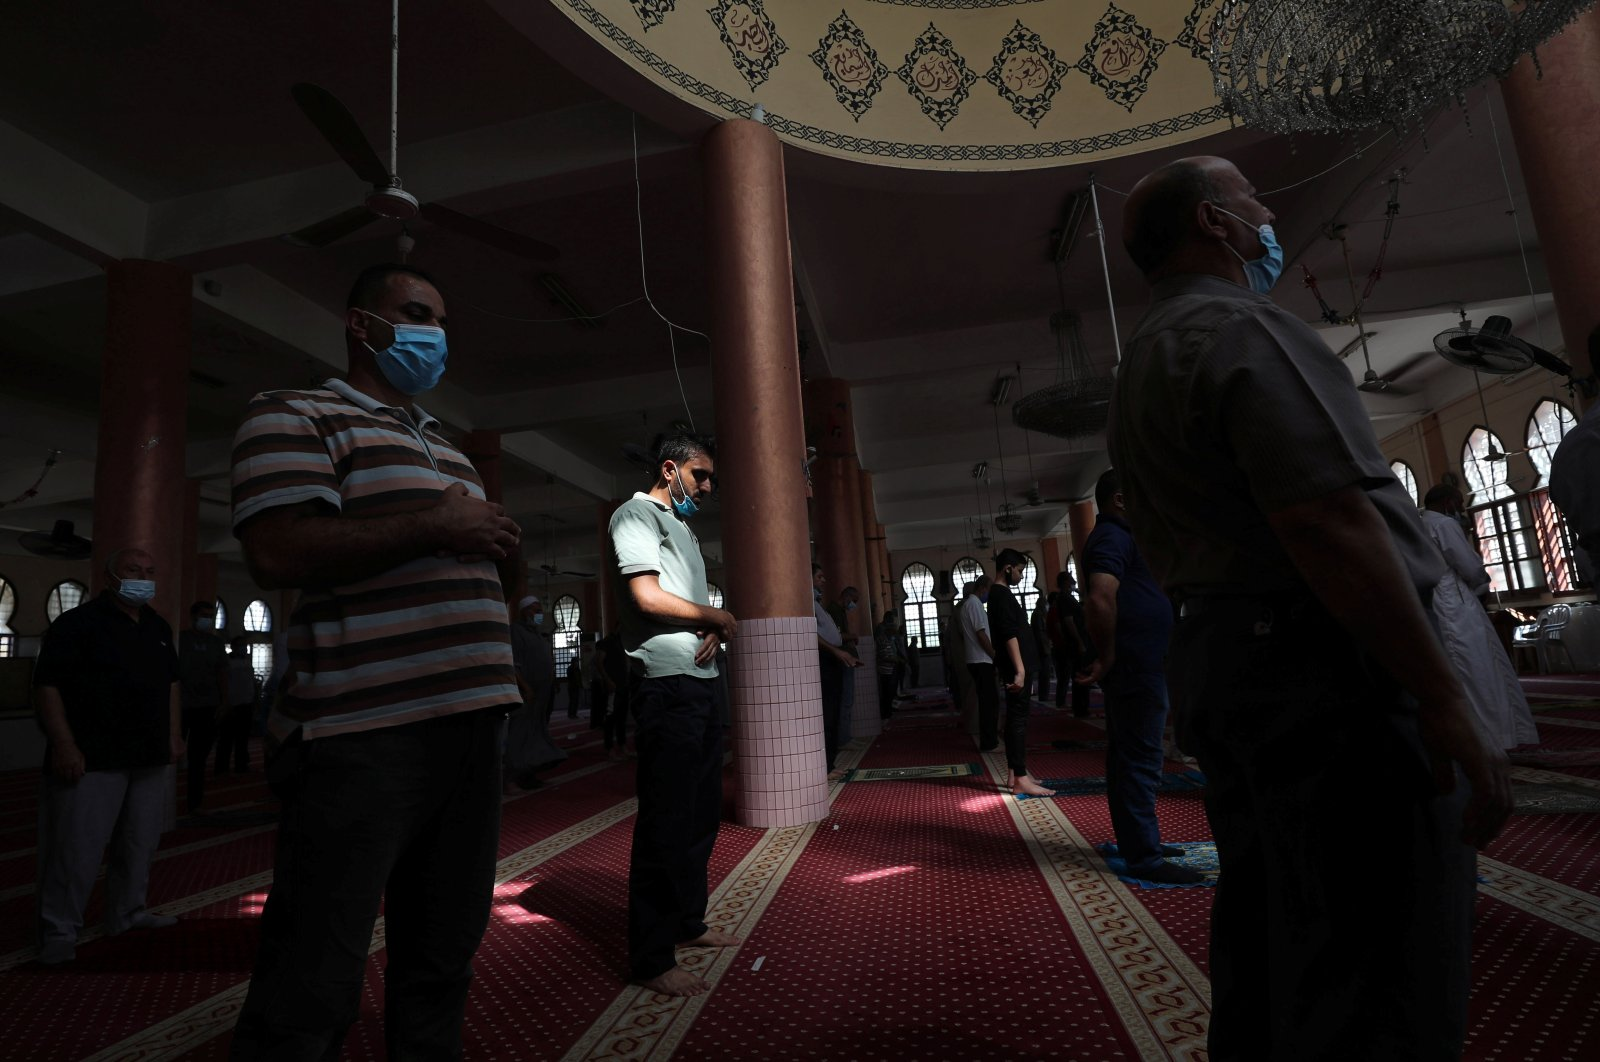 Palestinians pray in a mosque after it was reopened as coronavirus restrictions eased, in Gaza City on Oct. 18, 2020. (Reuters Photo)